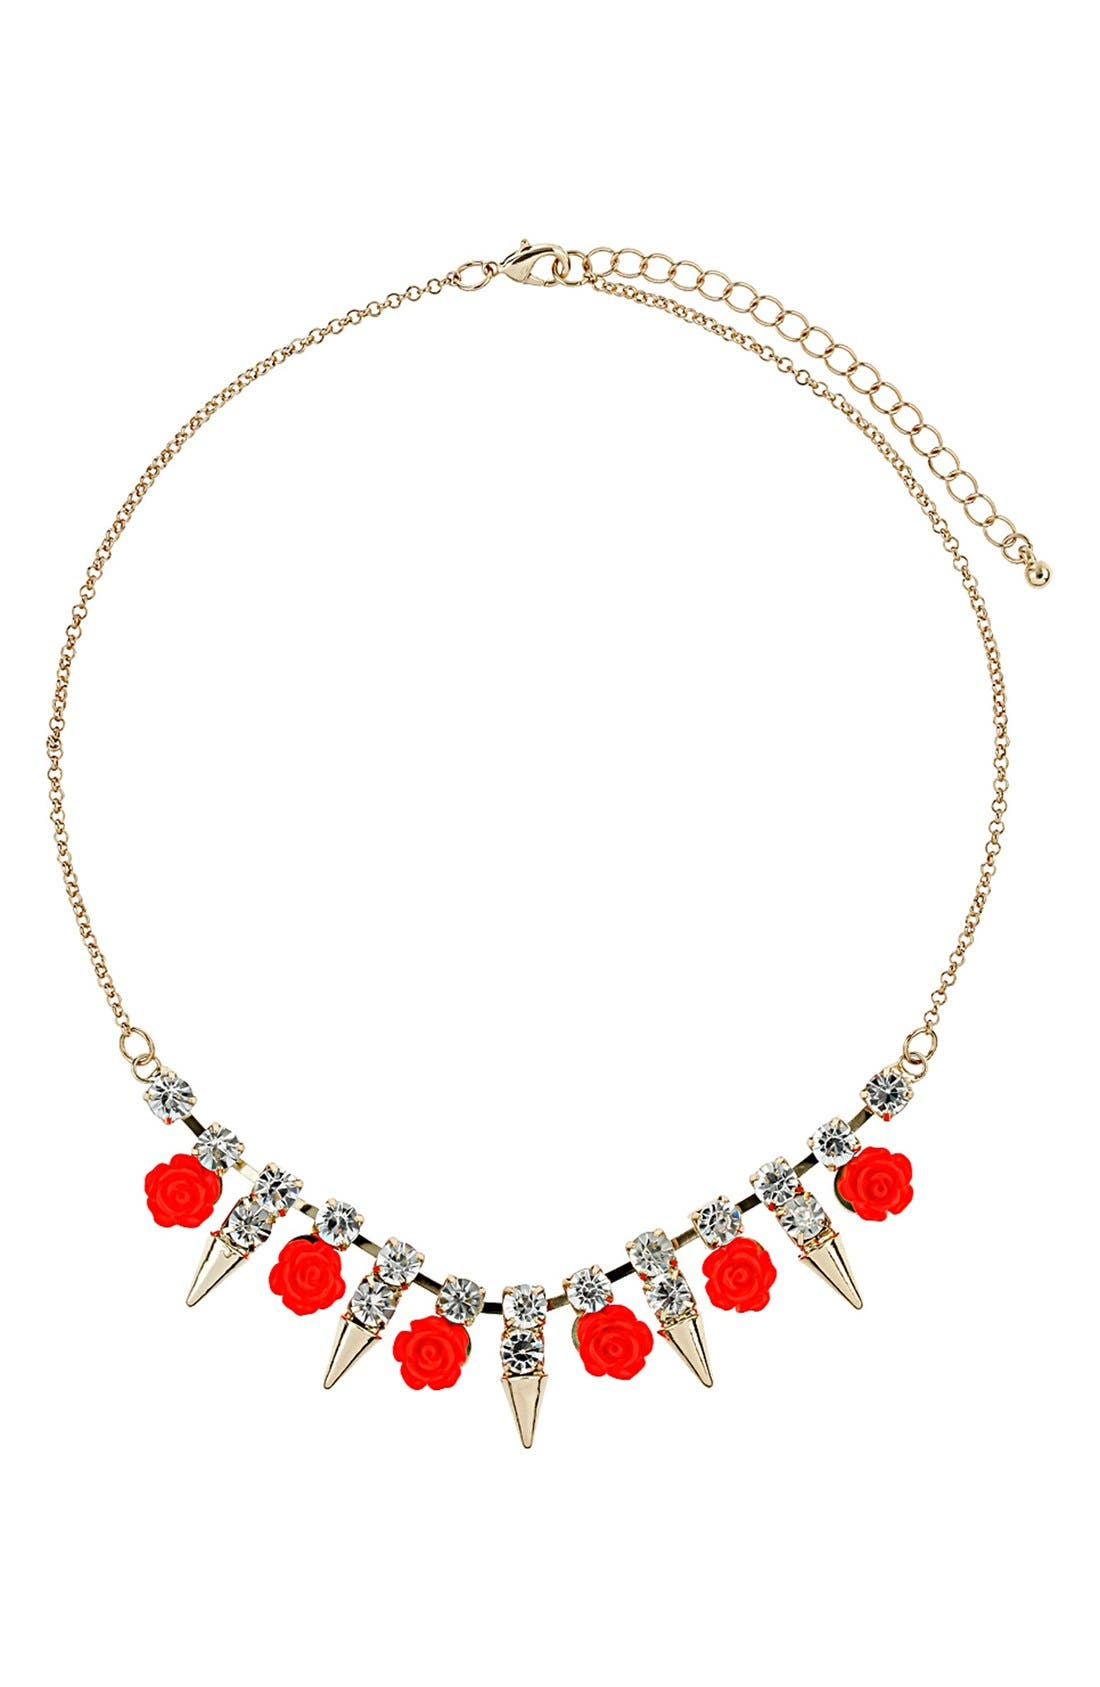 Alternate Image 1 Selected - Topshop 'Rose & Spike' Collar Necklace